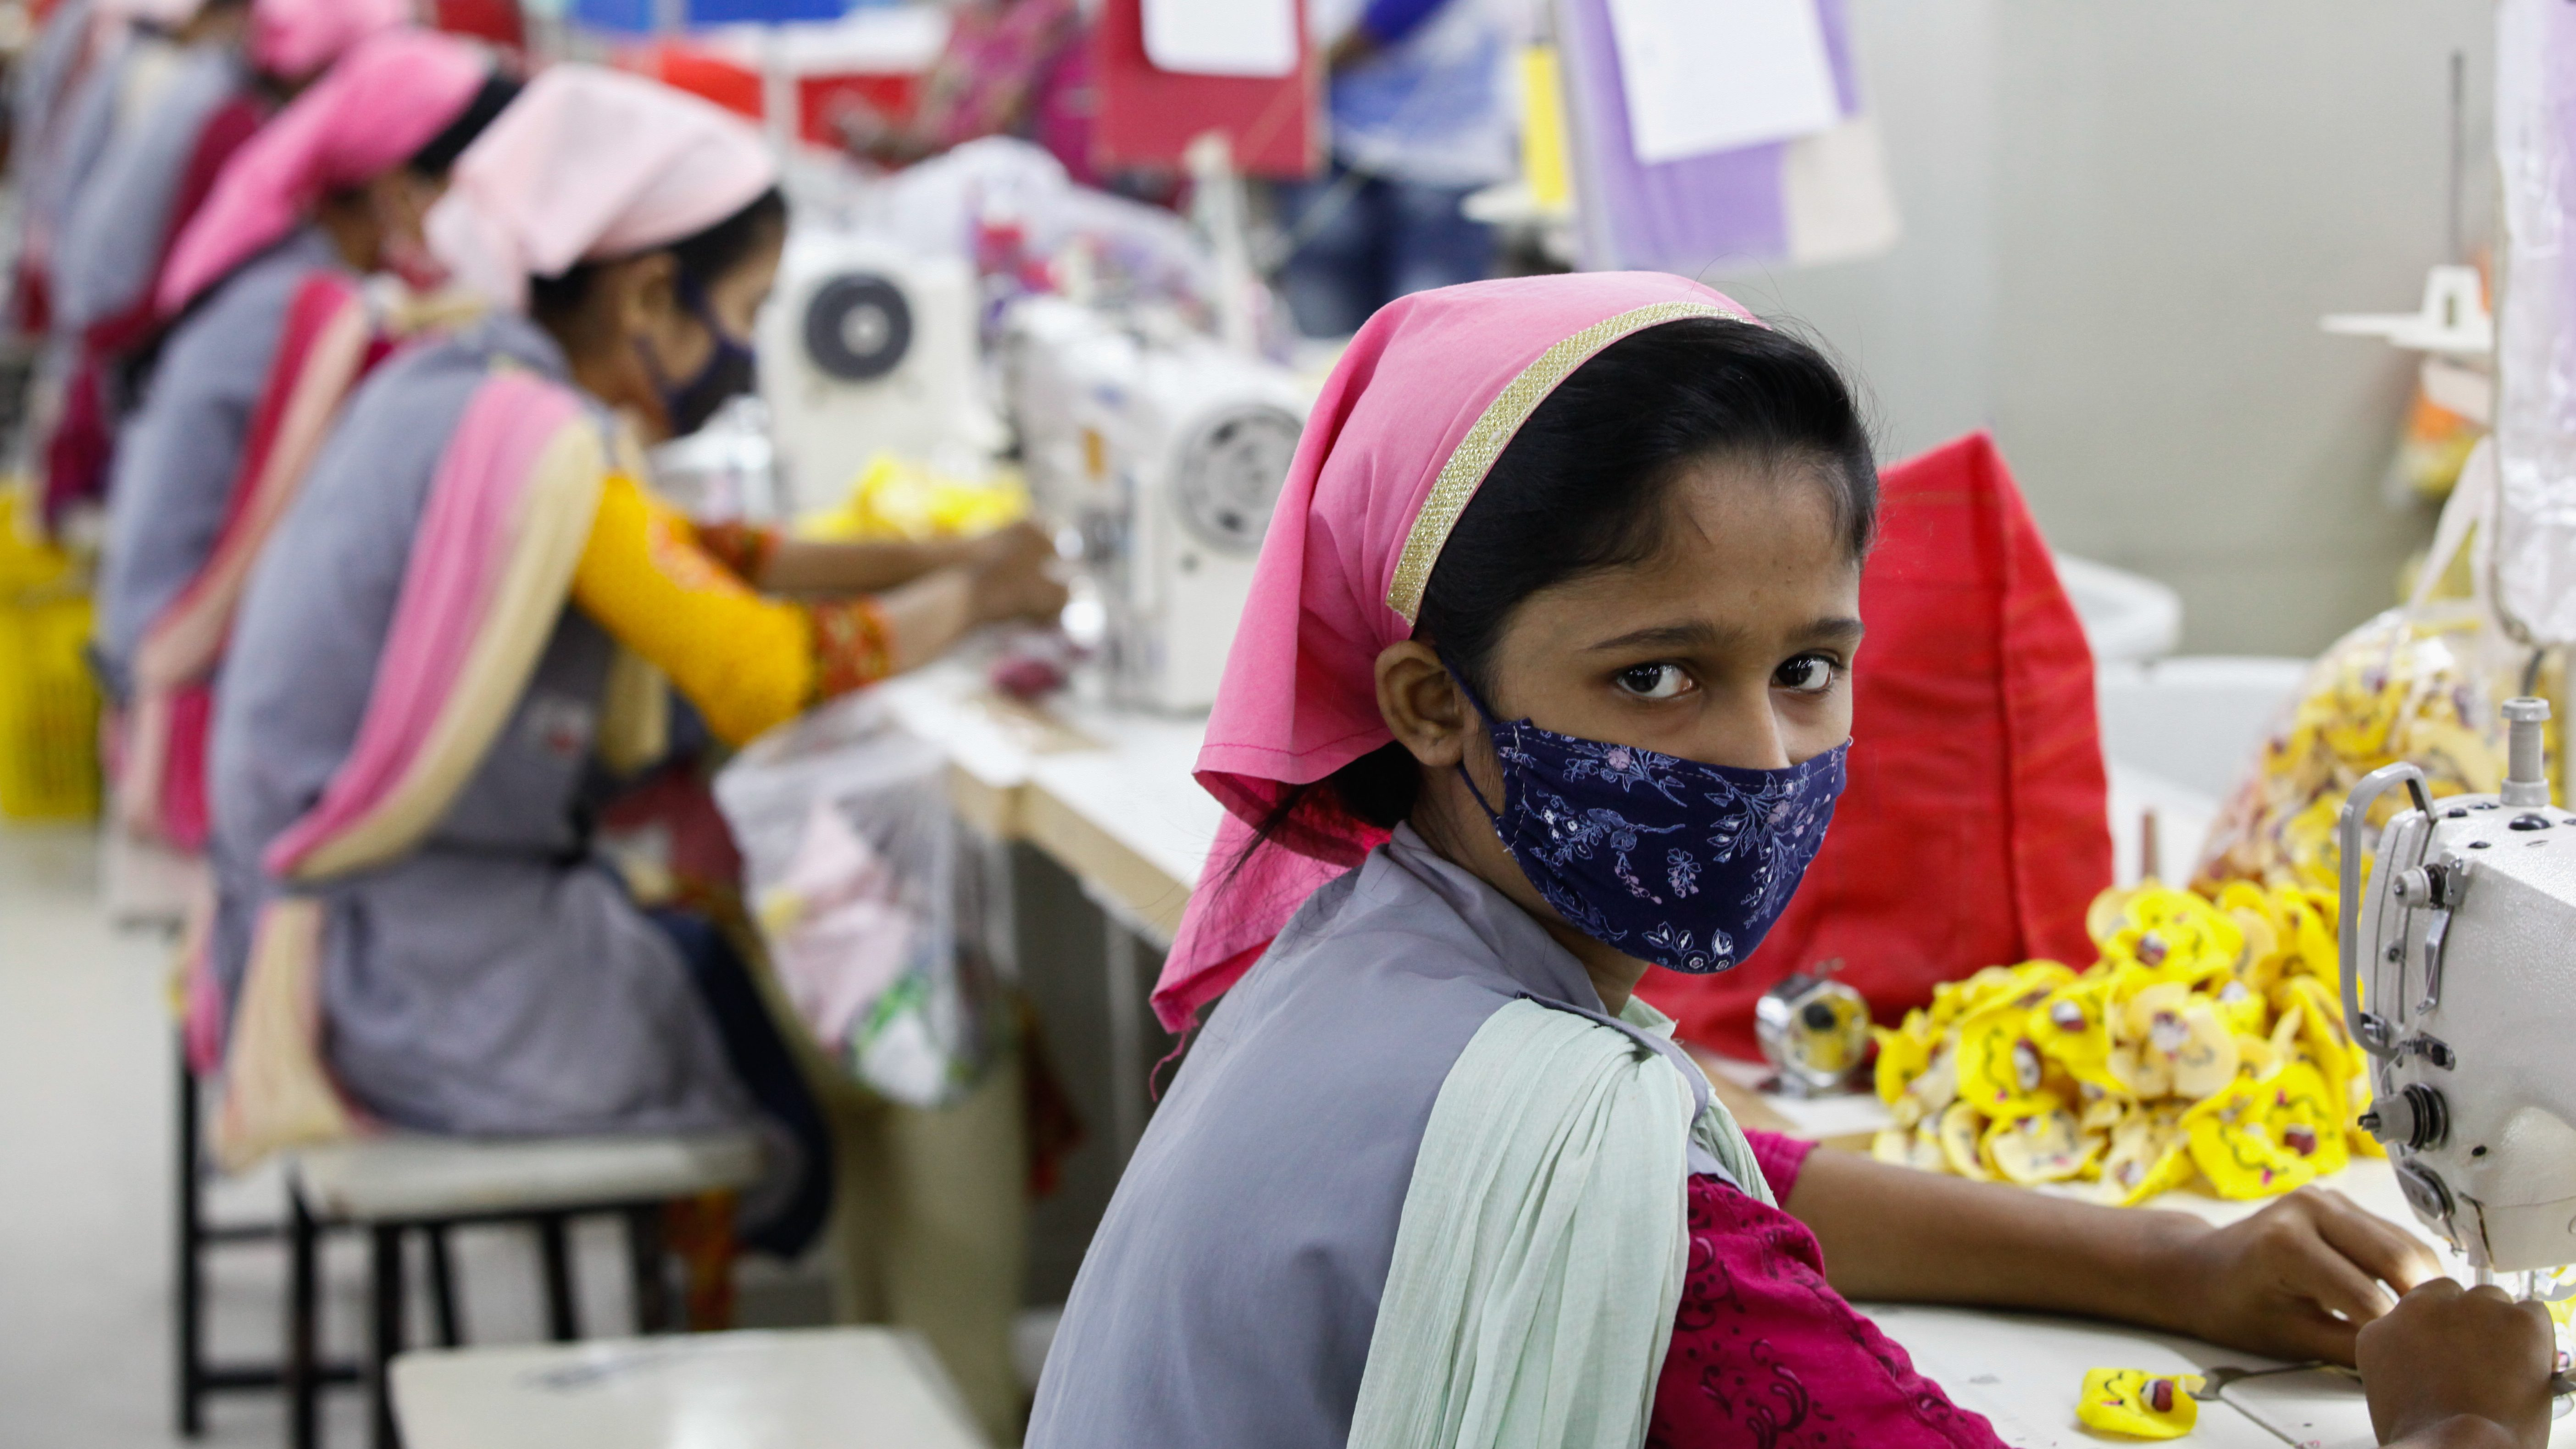 Bangladeshi female workers work at a garments factory in Gazipur outskirts of Dhaka on February 17, 2018. The garment sector has provided employment opportunities to women from the rural areas that previously did not have any opportunity to be part of the formal workforce. This has given women the chance to be financially independent and have a voice in the family because now they contribute financially.However, women workers face problems. Most women come from low income families. Low wage of women workers and their compliance have enabled the industry to compete with the world market.The textile and clothing industries provide the single source of growth in Bangladesh's rapidly developing economy. Exports of textiles and garments are the principal source of foreign exchange earnings. Bangladesh is the world's second-largest apparel exporter of western (fast) fashion brands. Sixty percent of the export contracts of western brands are with European buyers and about forty percent with American buyers. (Photo by Mehedi Hasan/NurPhoto via Getty Images)